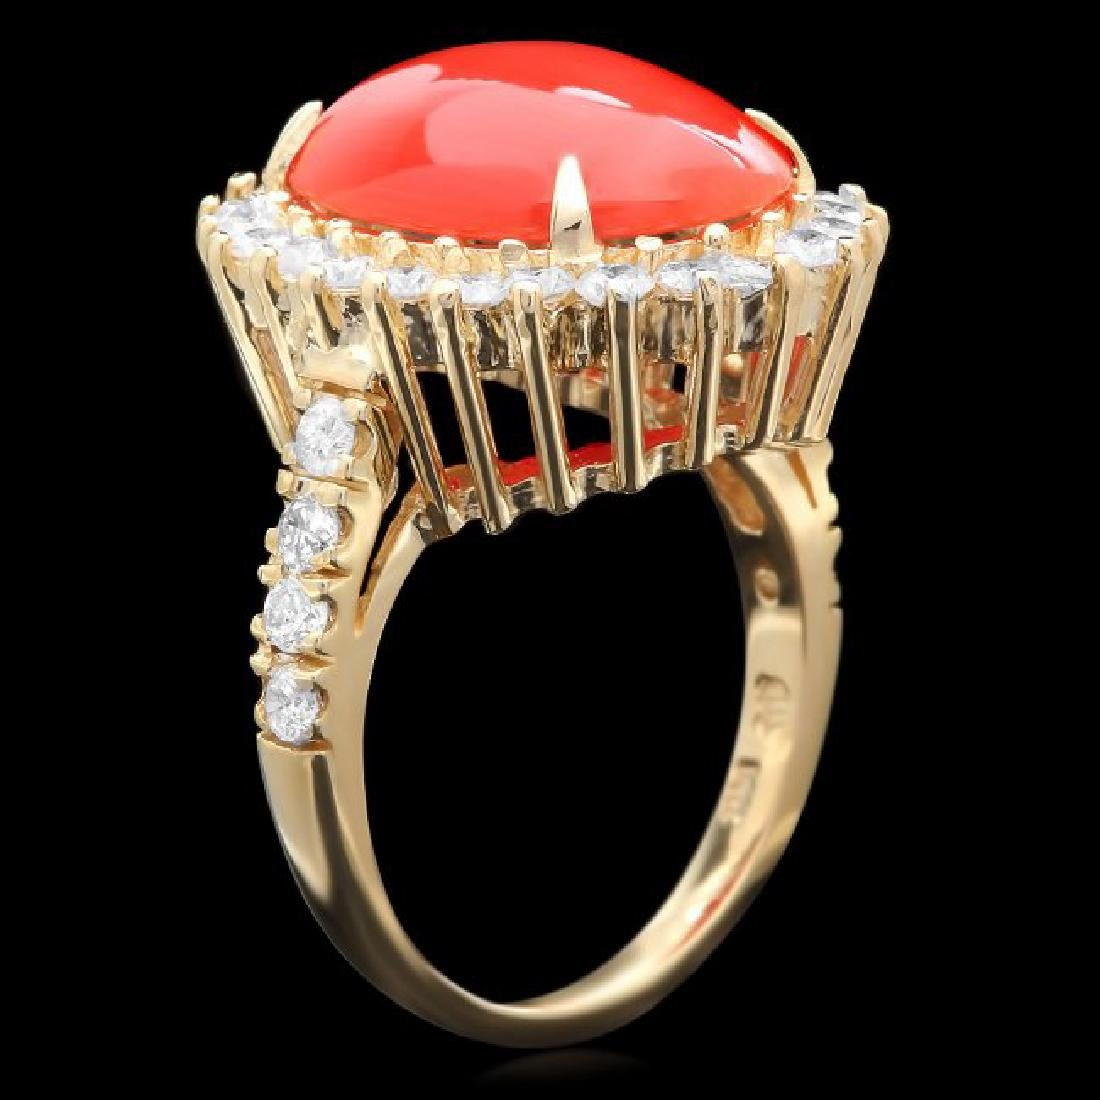 14k Yellow Gold 5.00ct Coral 1.35ct Diamond Ring - 2